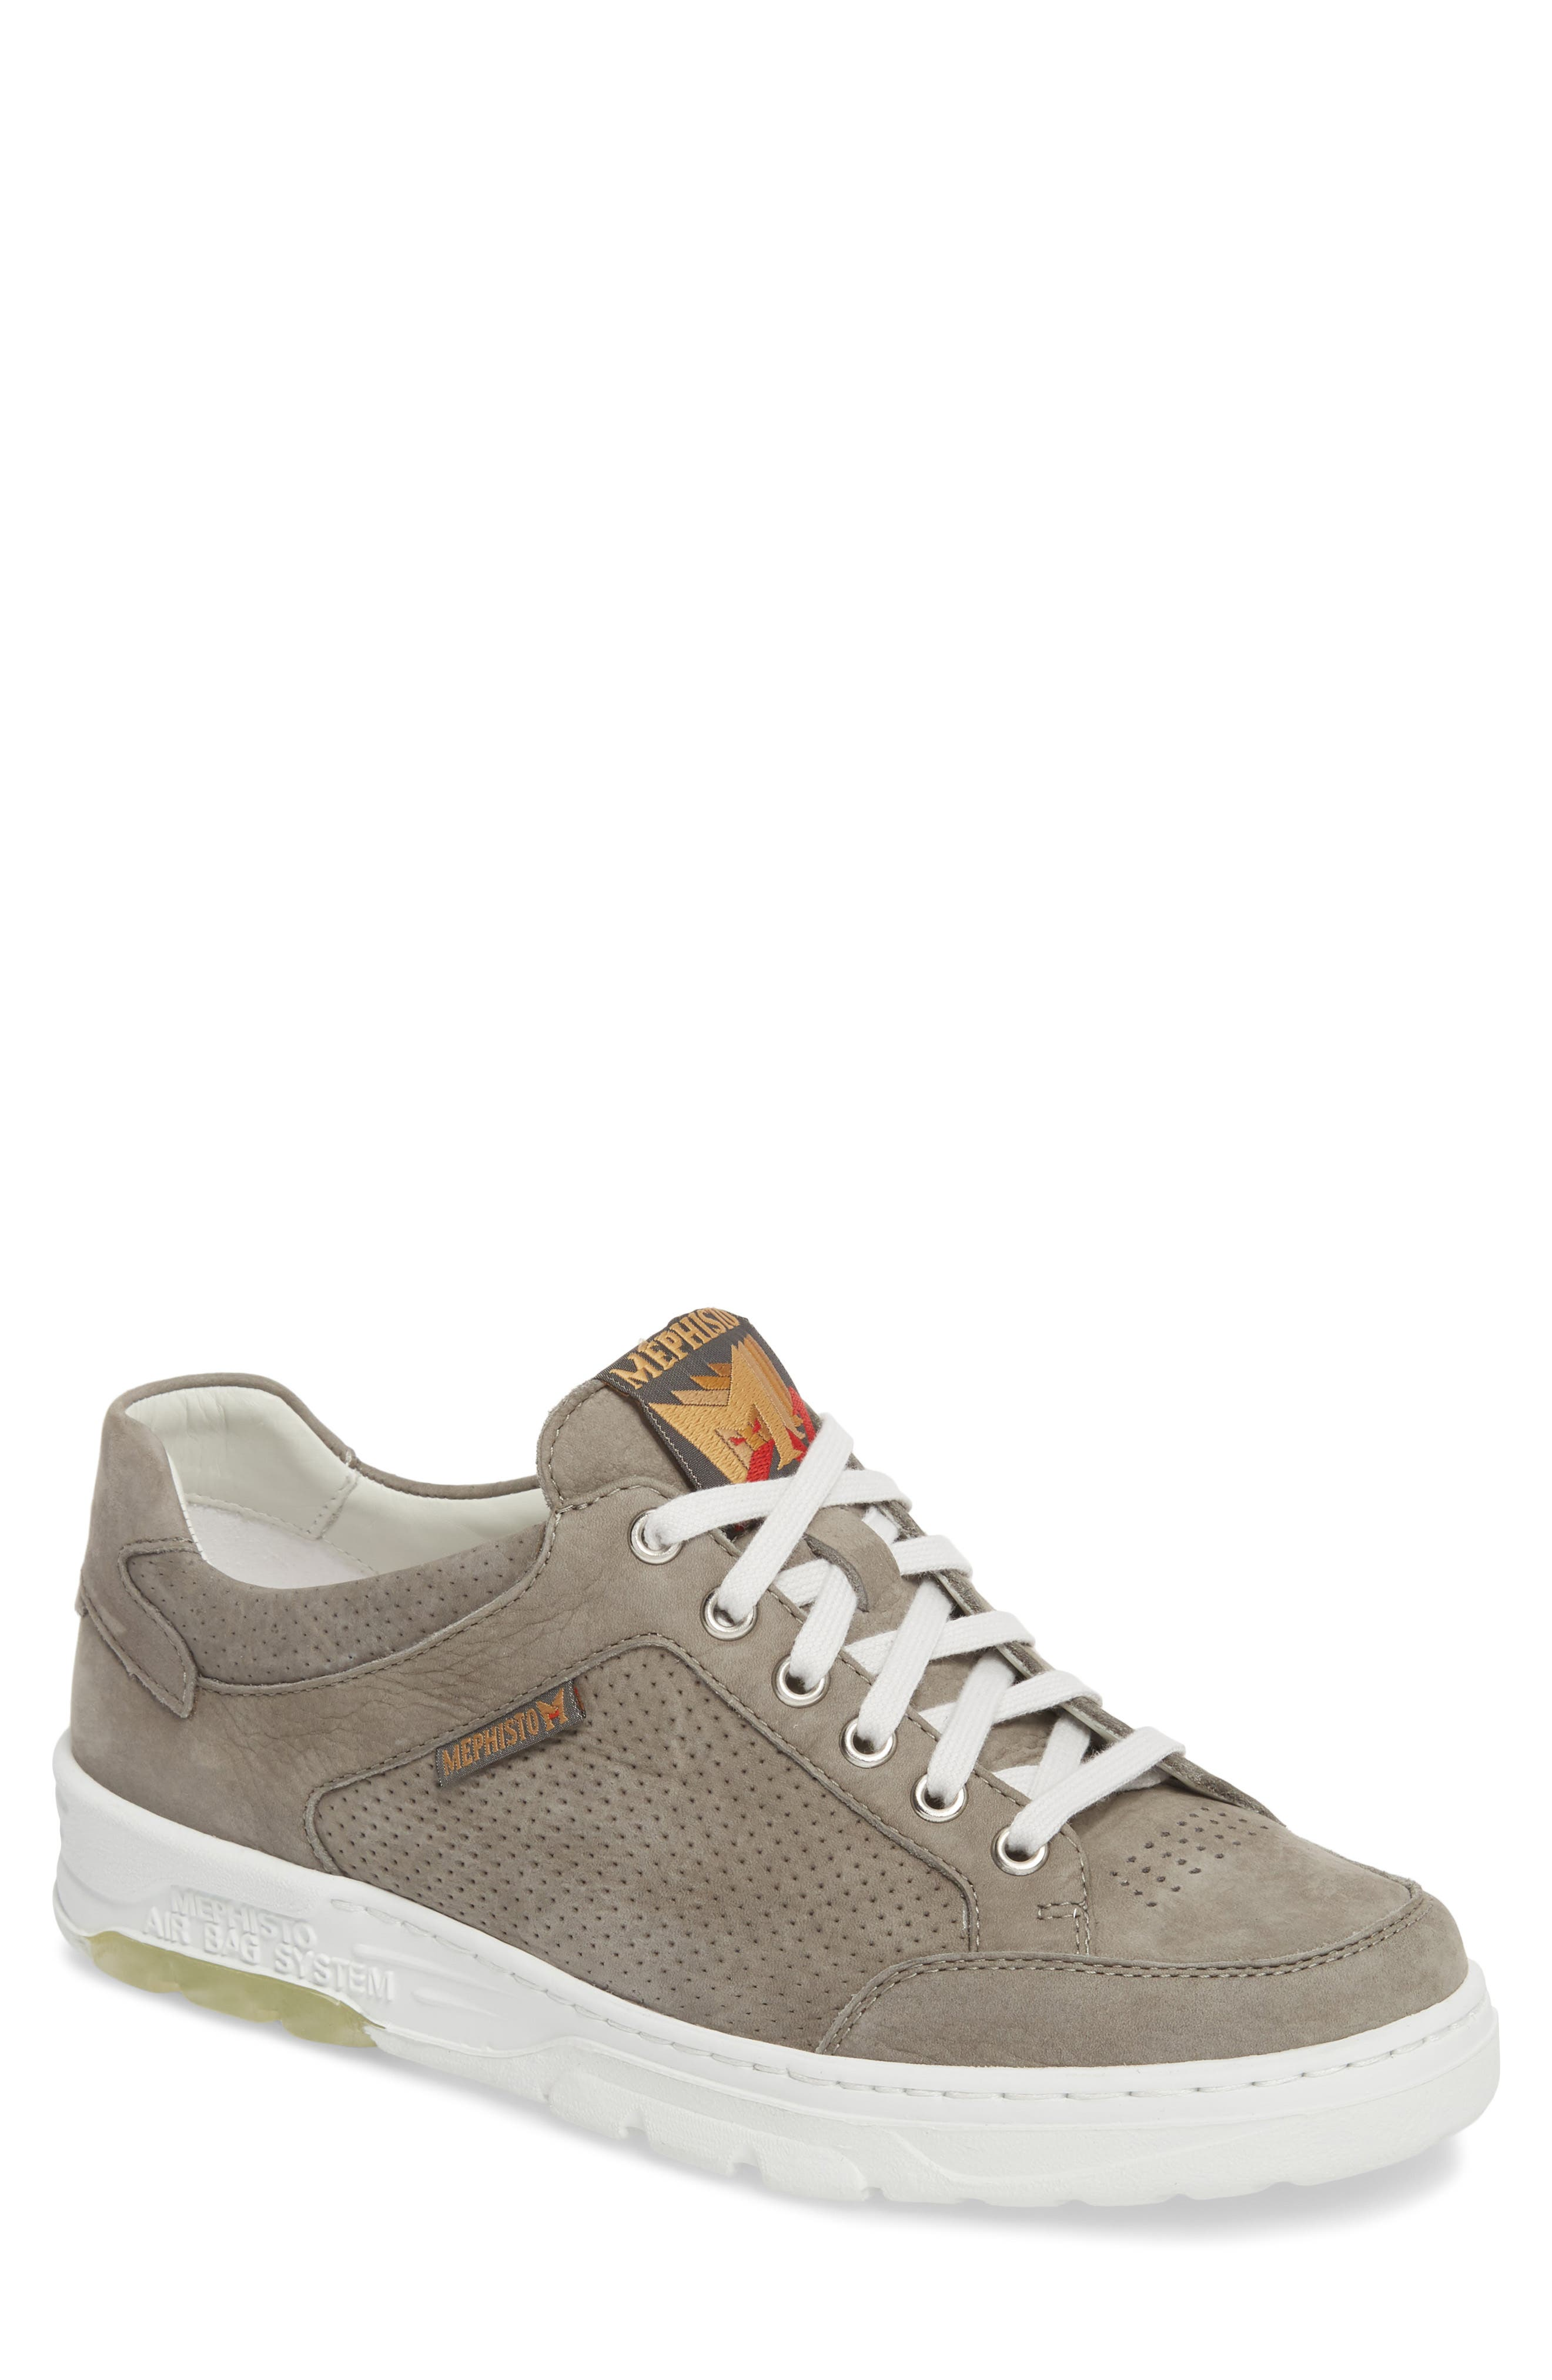 MEPHISTO Mathias Perforated Sneaker, Main, color, 031